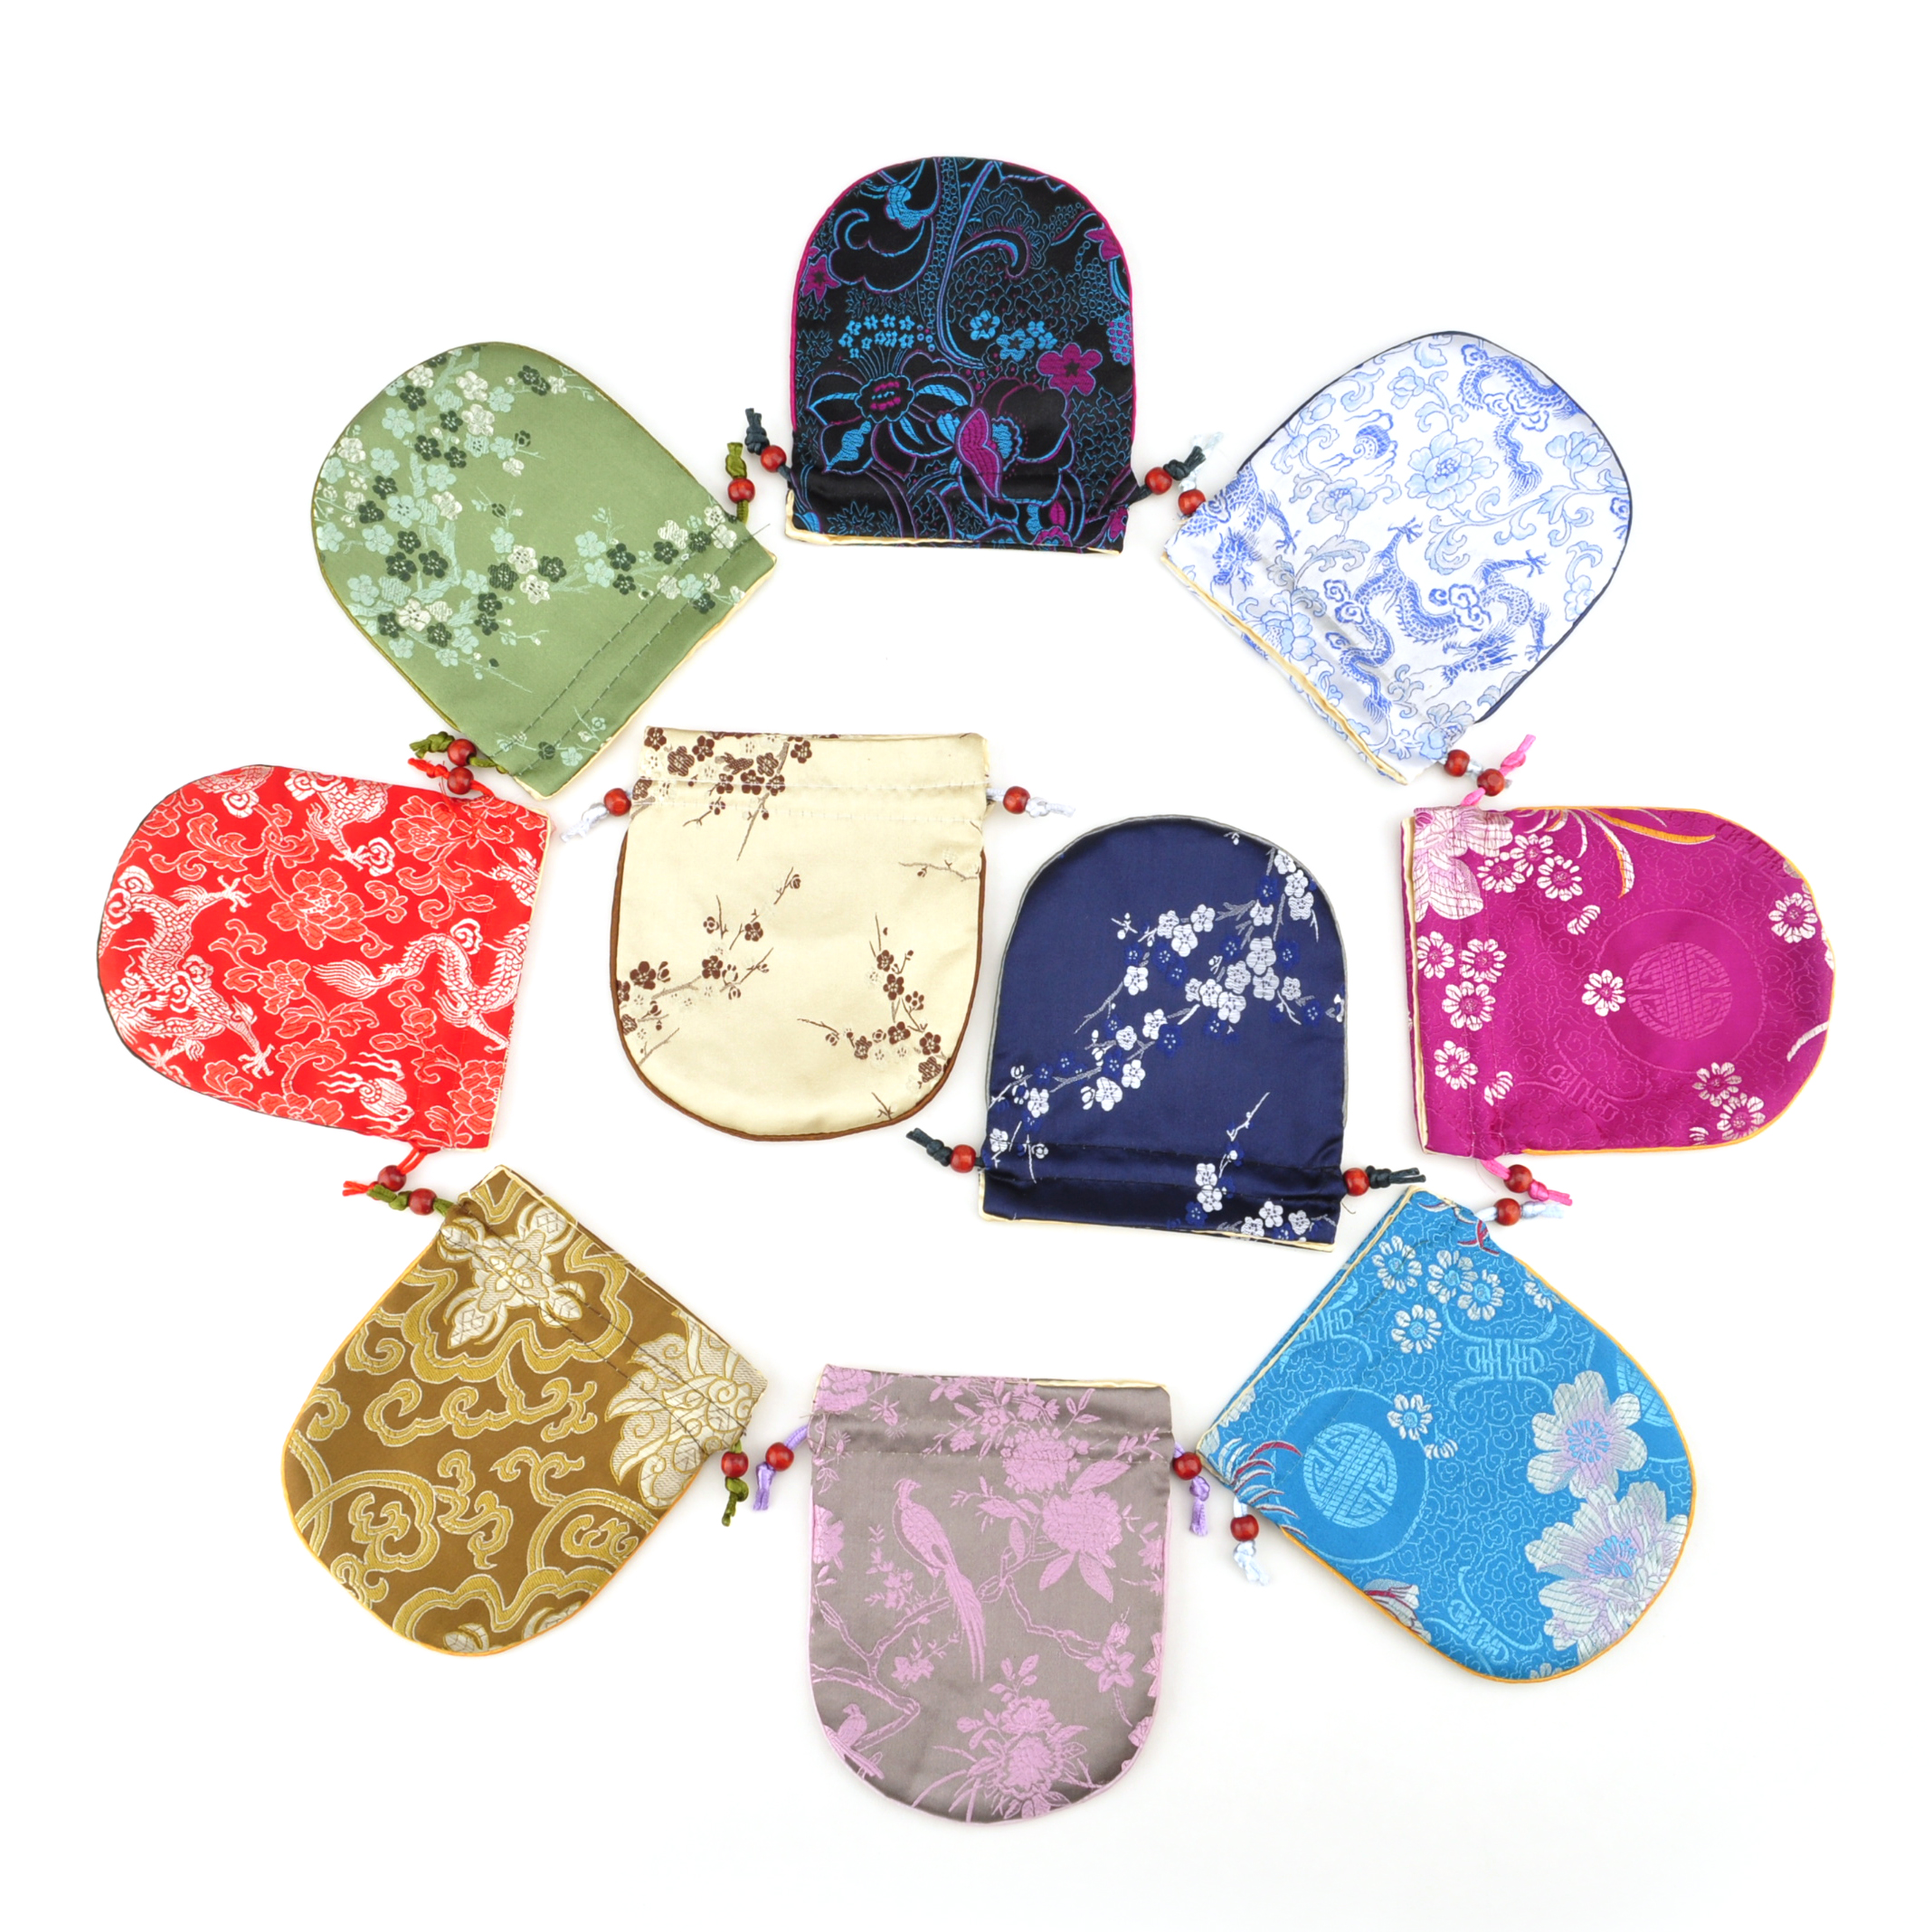 "Aspire Silk Brocade Pouch with Drawstring, Wedding Favor Bags, 4-3/4"" x 5-1/2"", Assorted Colors, Wholesale Lot"